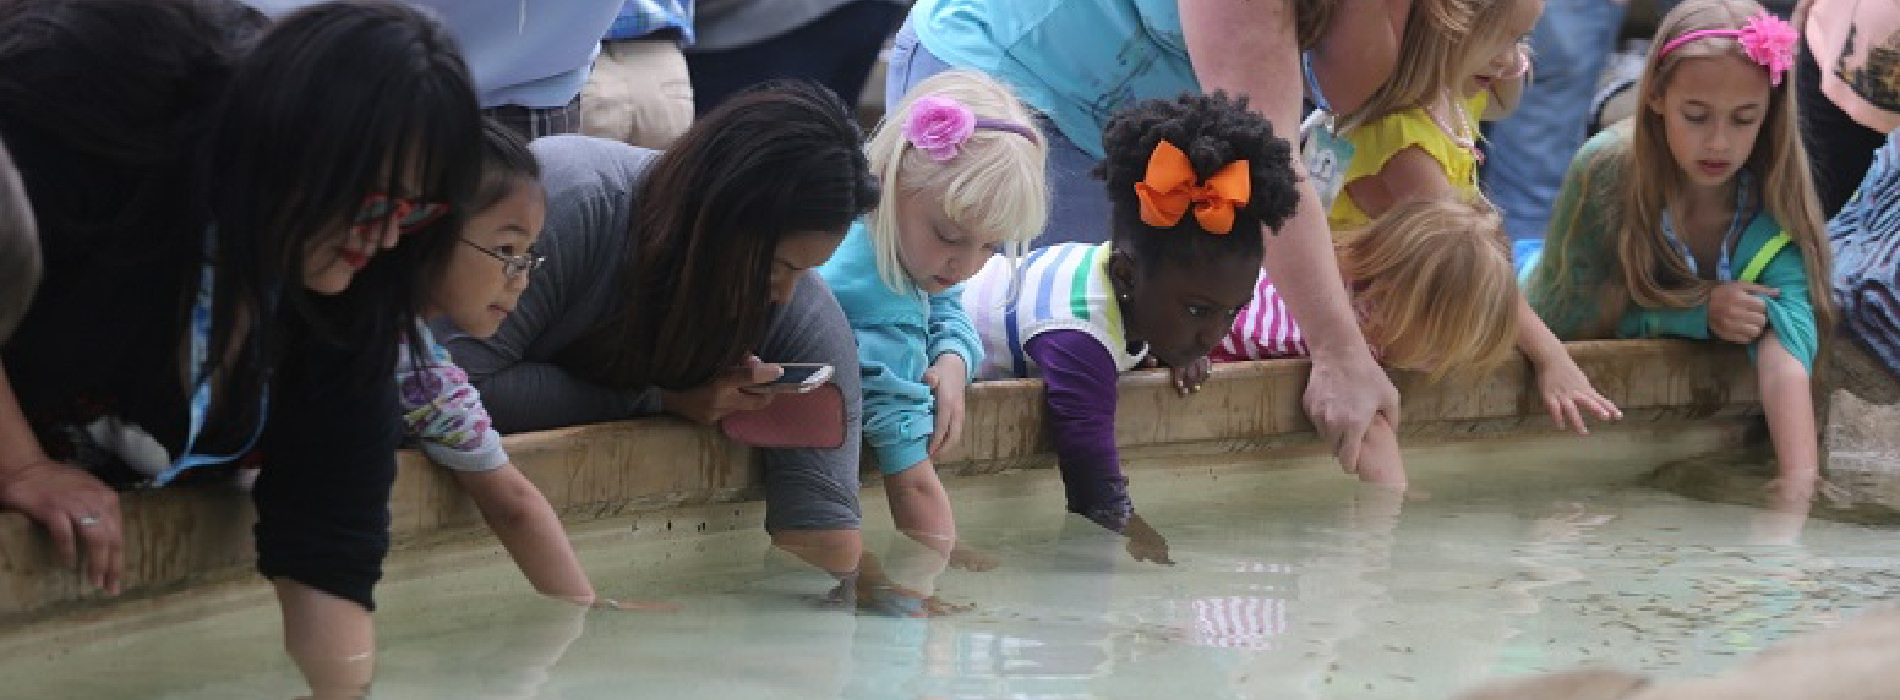 Young children reach into a shallow tank to touch marine life